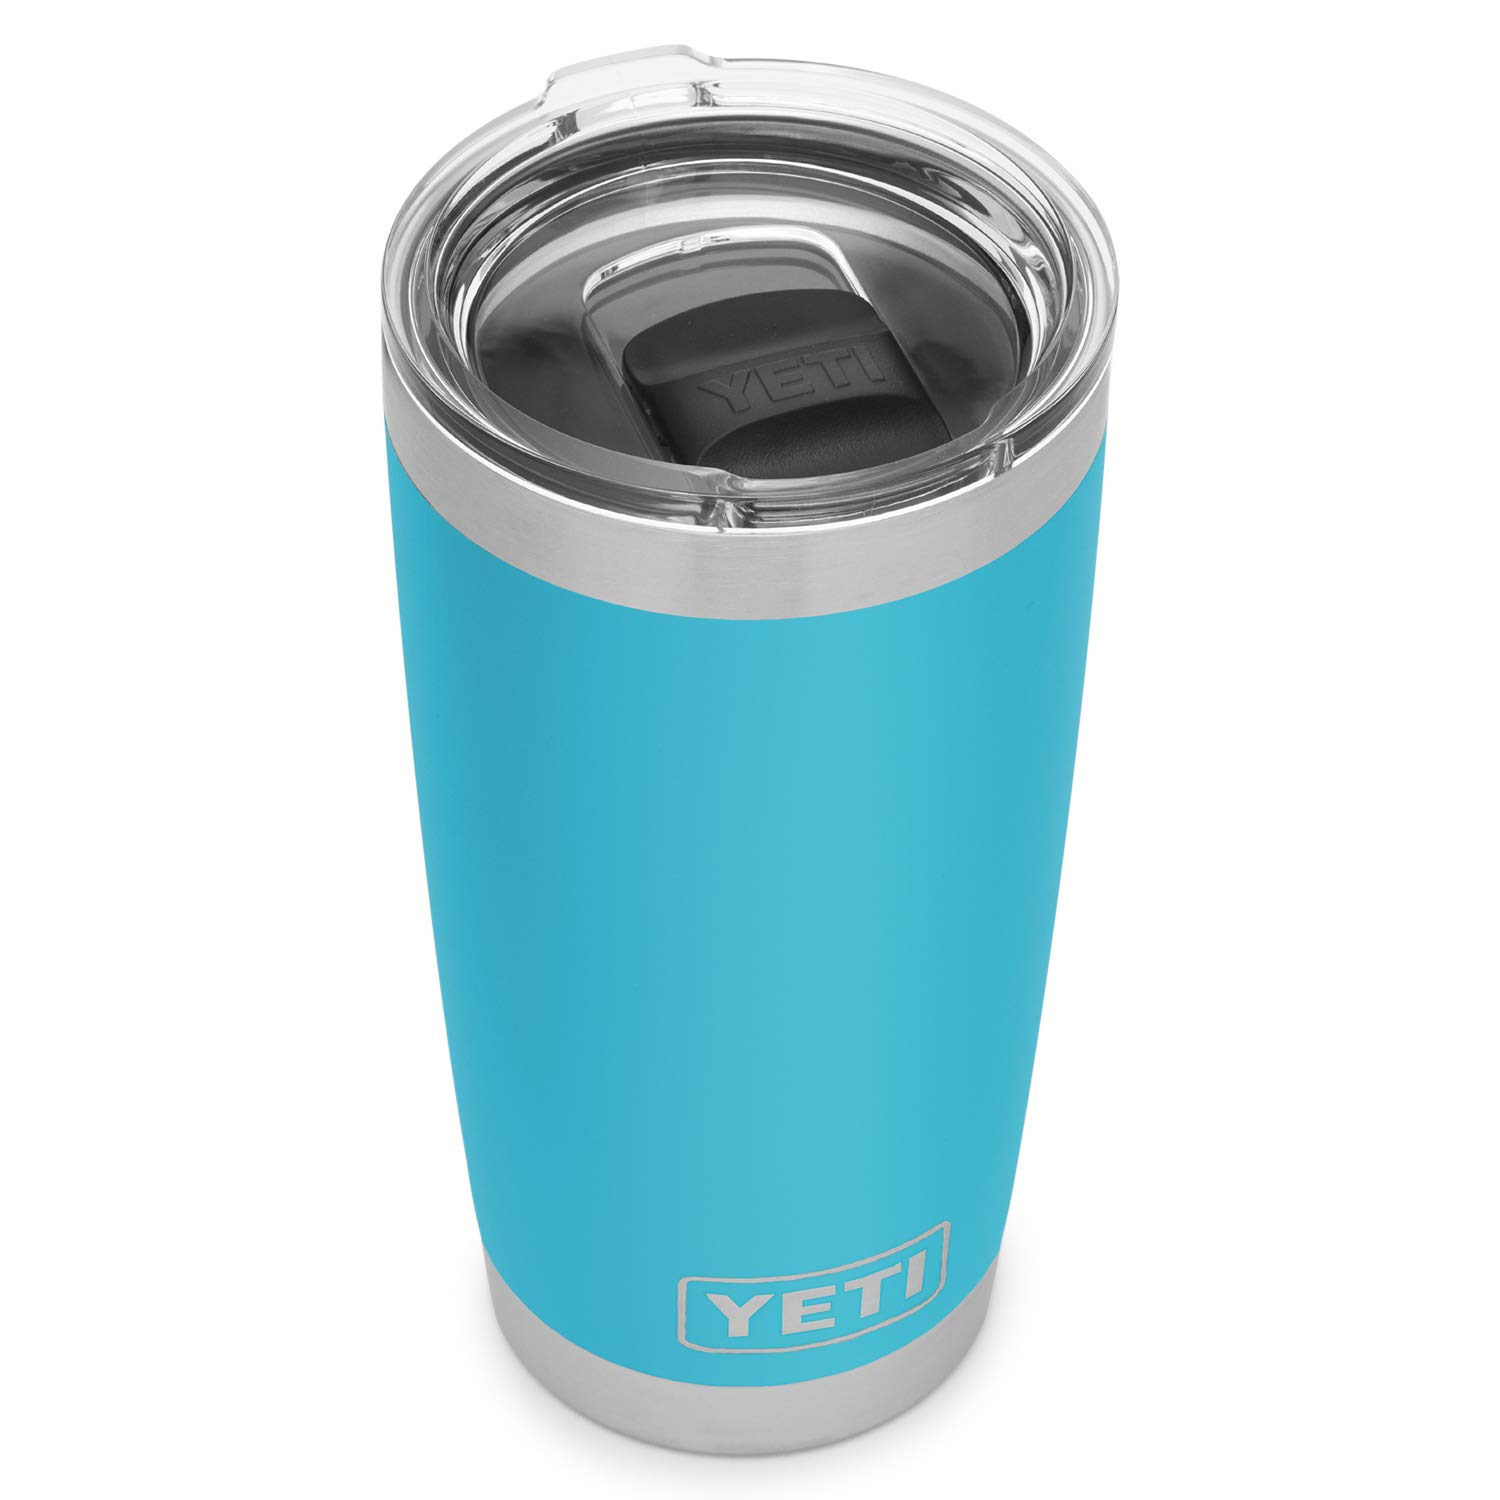 YETI Rambler 20 oz Stainless Steel Vacuum Insulated Tumbler w/MagSlider Lid, Reef Blue